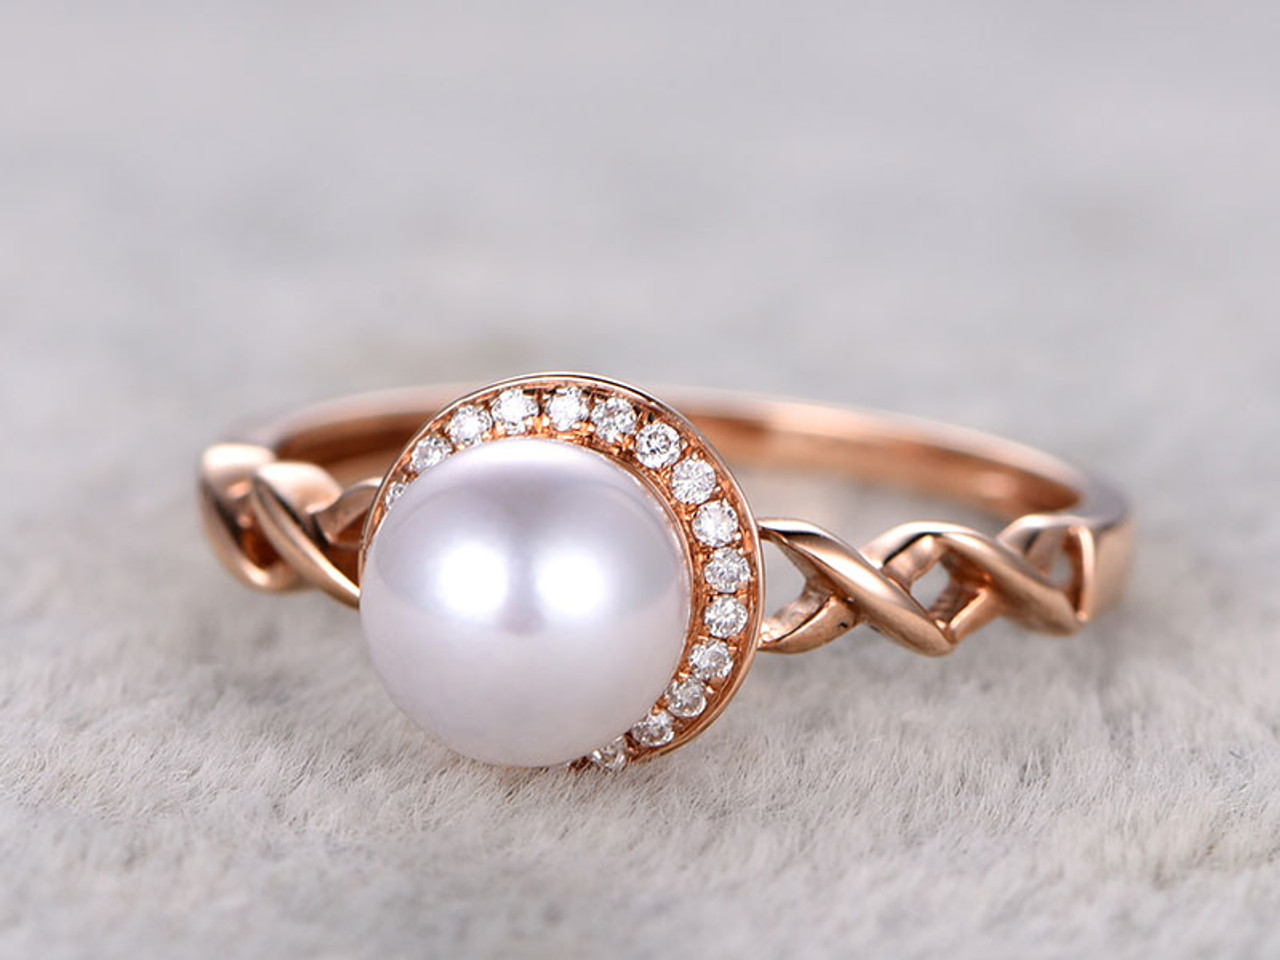 pearls tw designs mv zm cultured diamonds lane gold white kay kaystore ct engagement en pearl ring neil